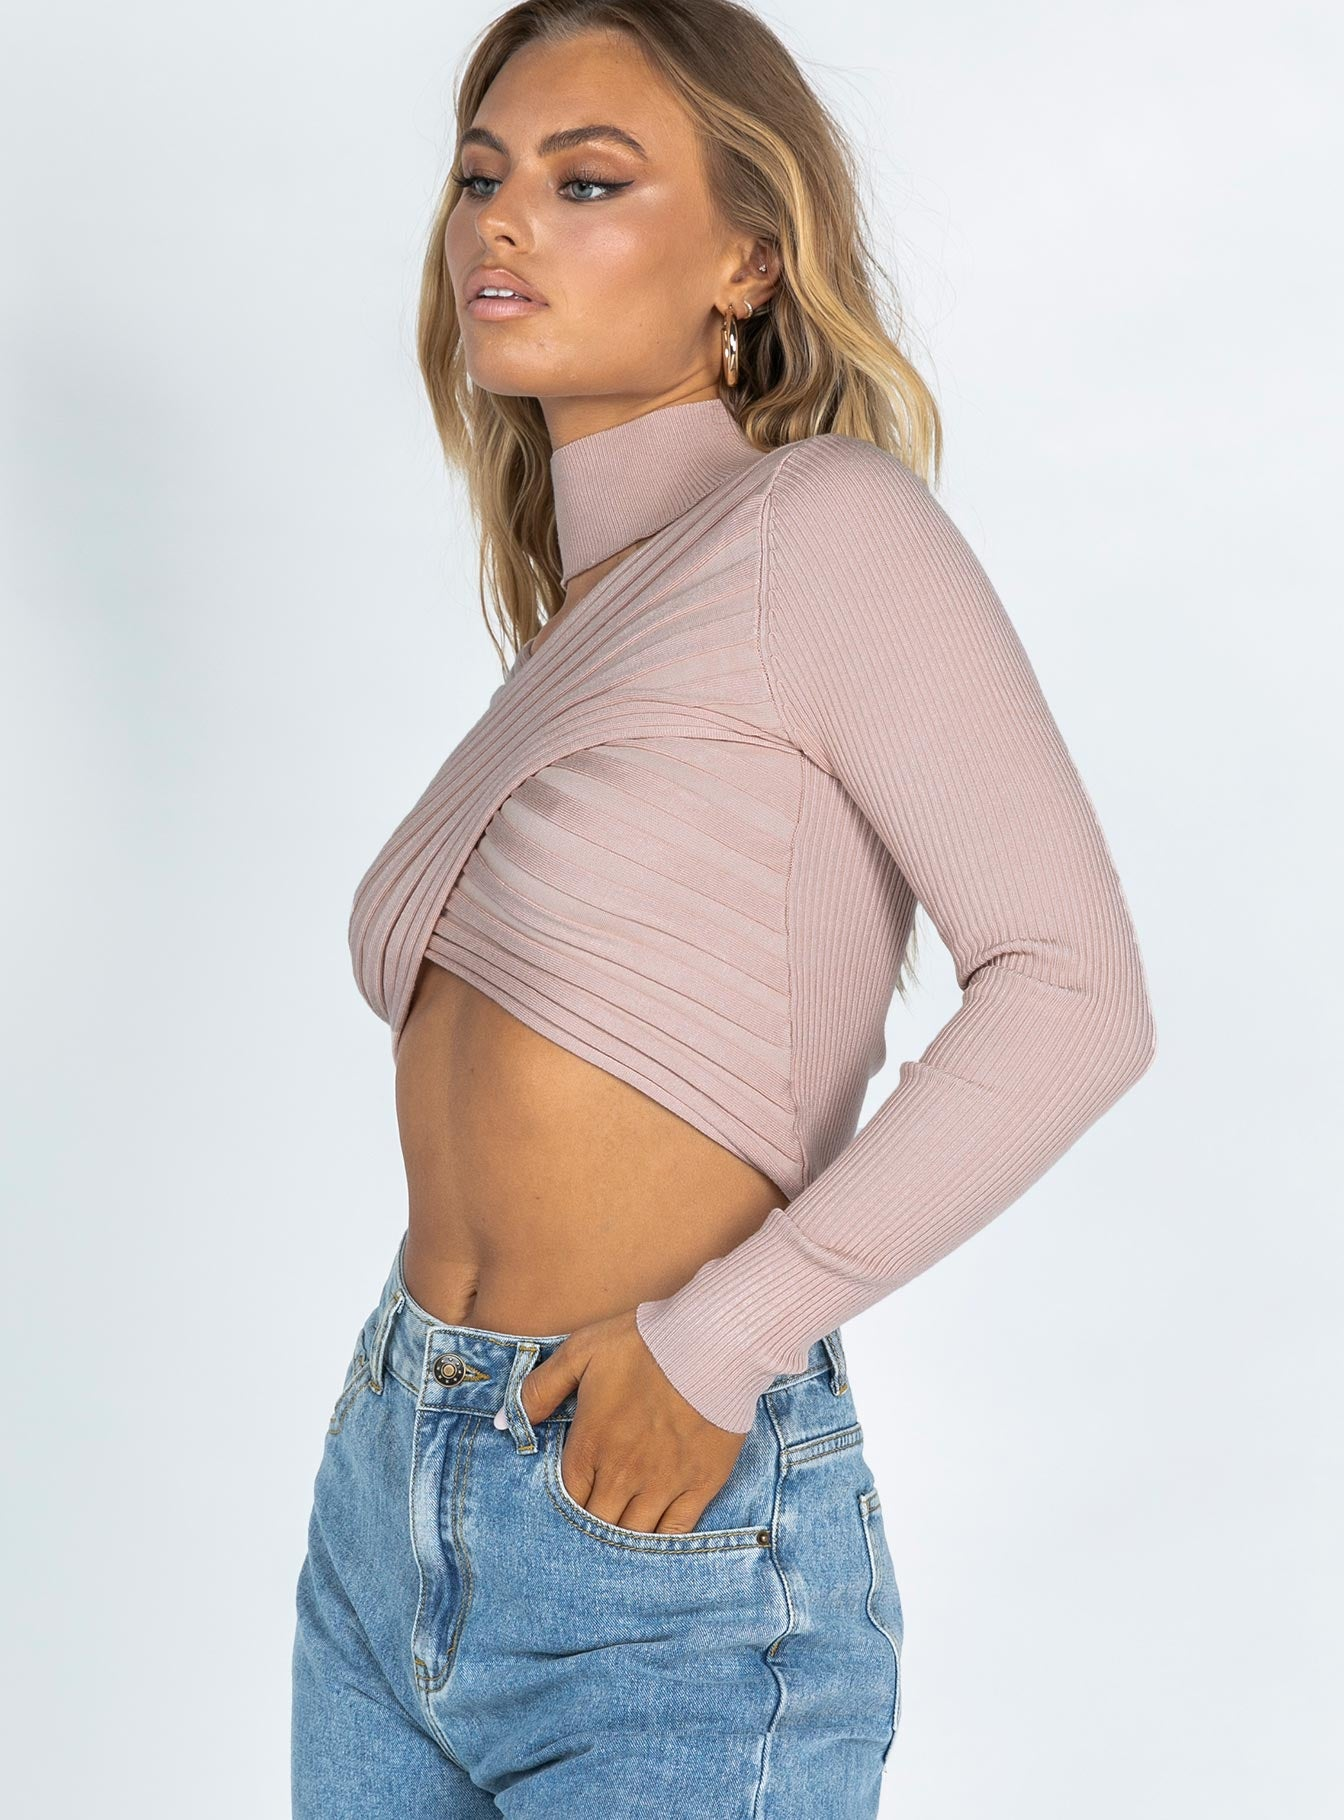 Trixie Long Sleeve Top Pink